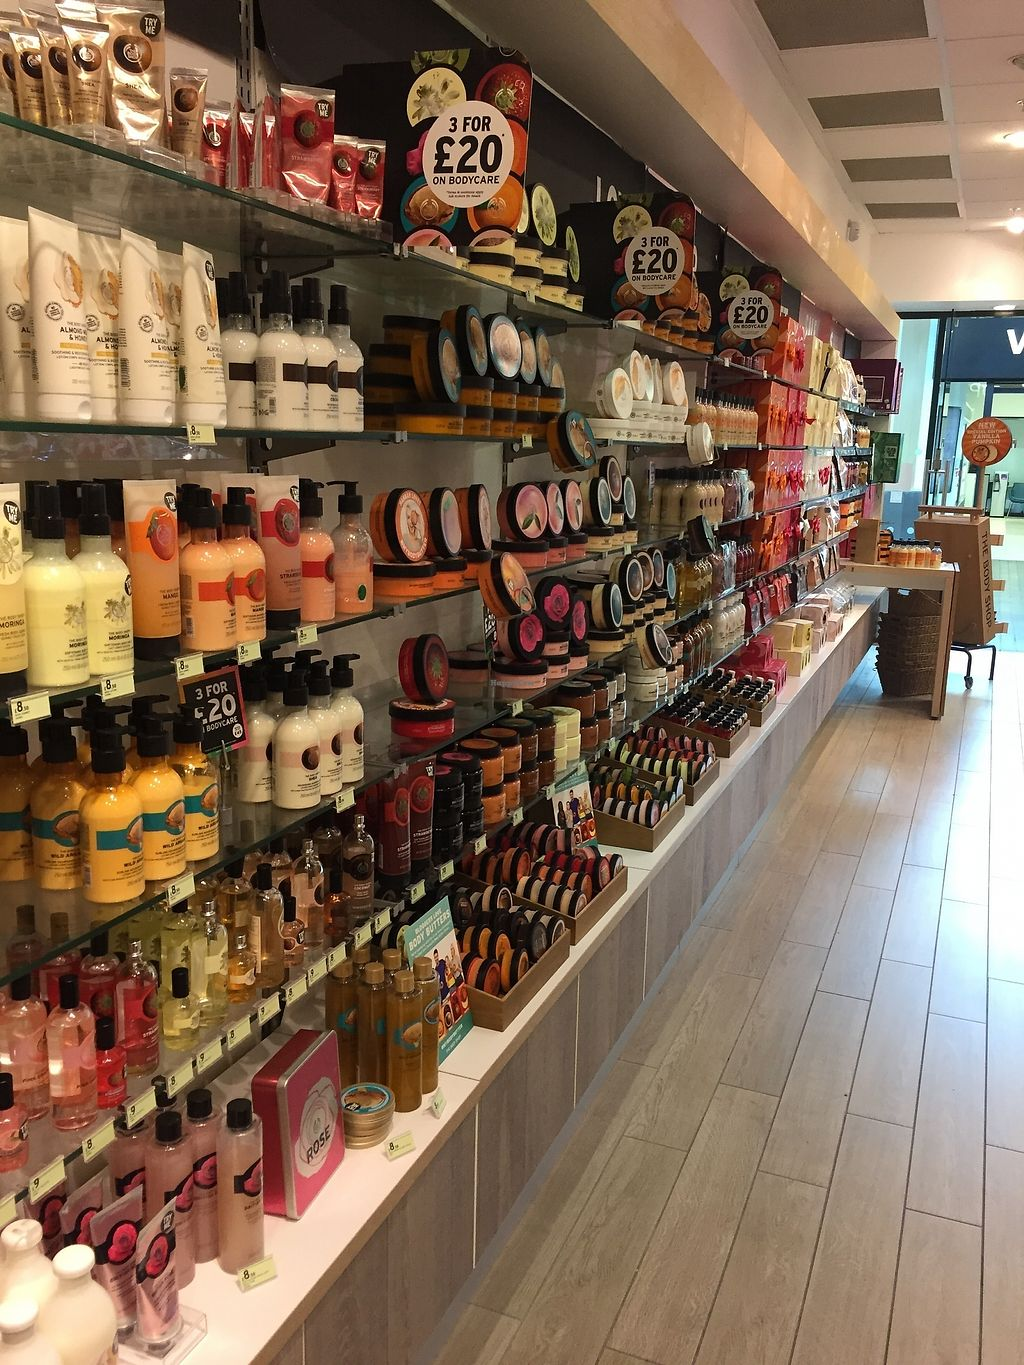 """Photo of The Body Shop  by <a href=""""/members/profile/TARAMCDONALD"""">TARAMCDONALD</a> <br/>In store goodies <br/> October 24, 2017  - <a href='/contact/abuse/image/97175/318486'>Report</a>"""